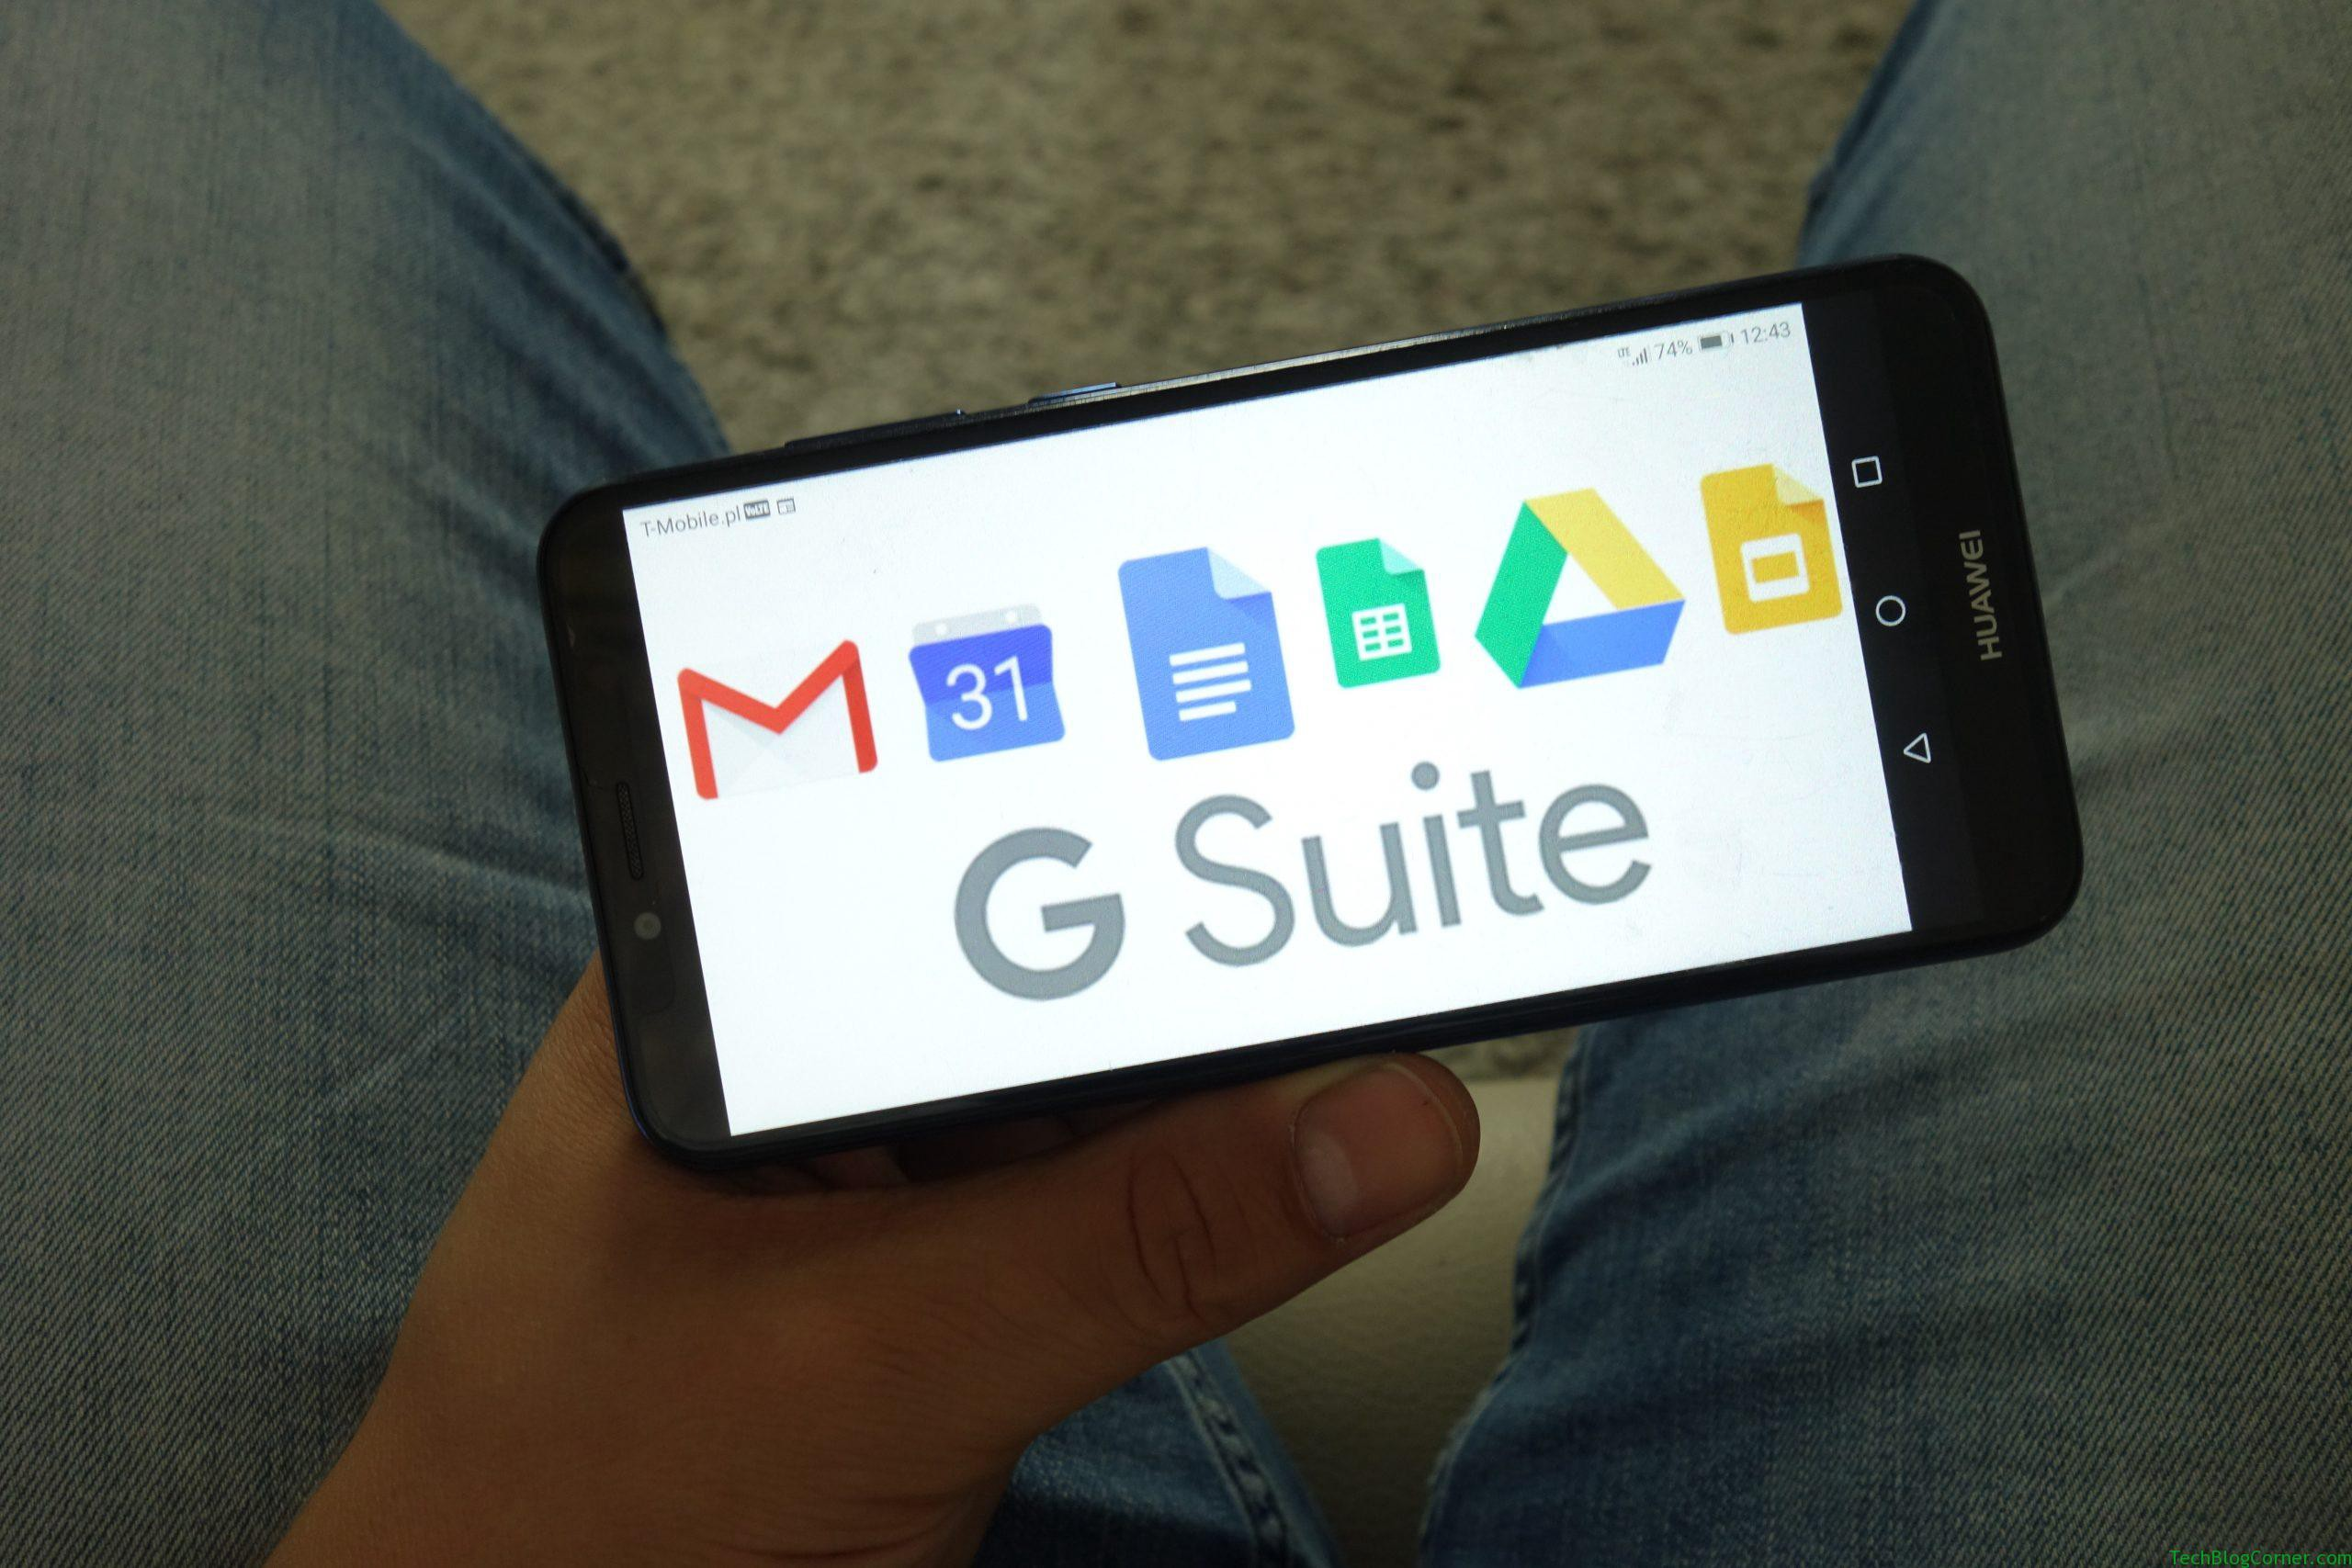 10 Techniques You Should Use To Maximize Use Of Your Google Applications